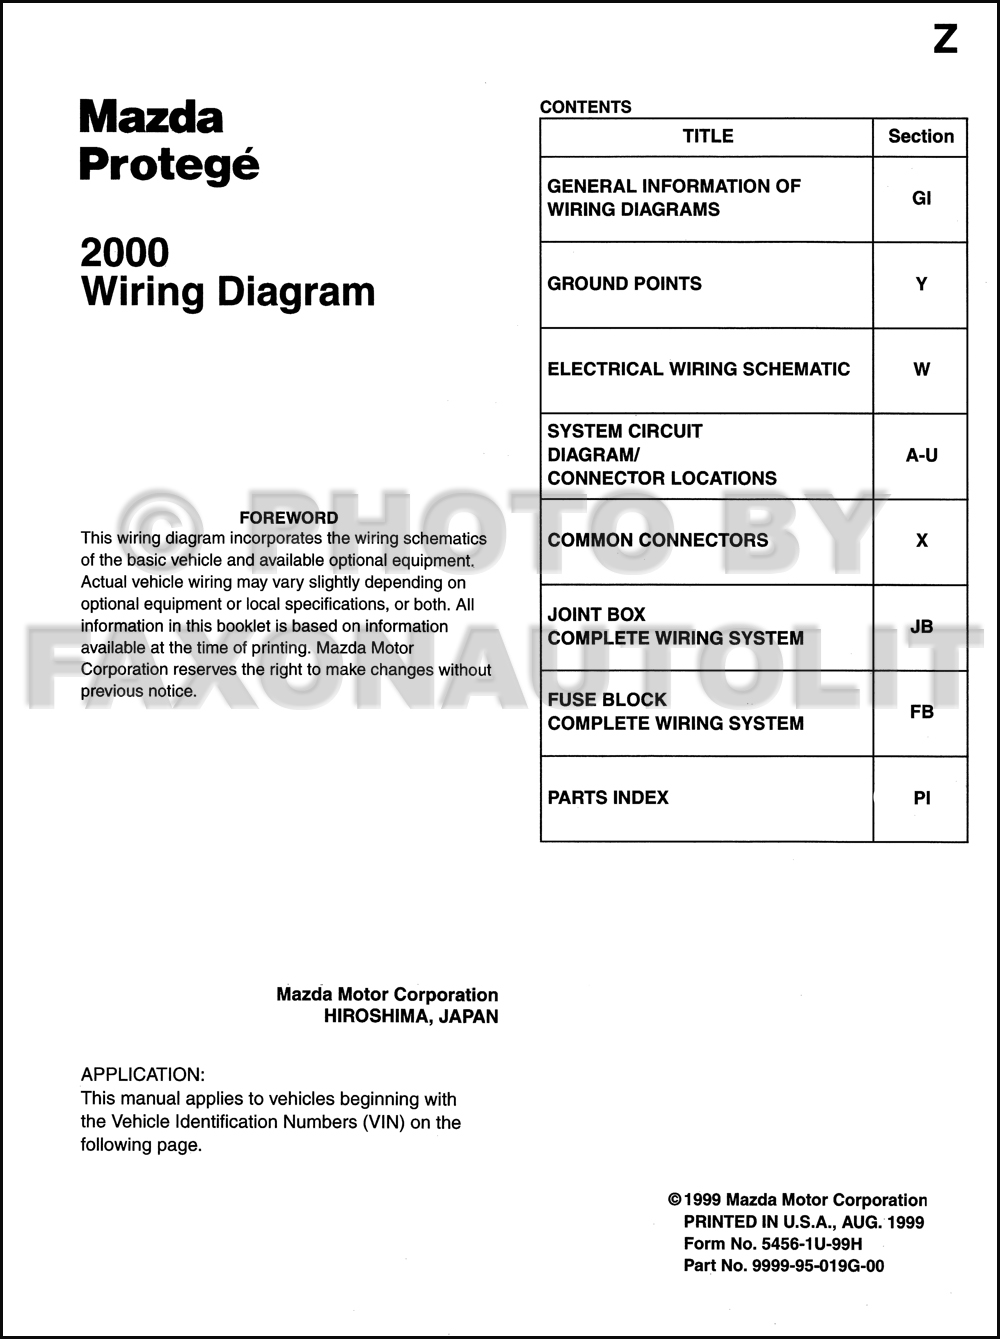 2000 Mazda Protege Wiring Diagram Manual Original. click on thumbnail to  zoom